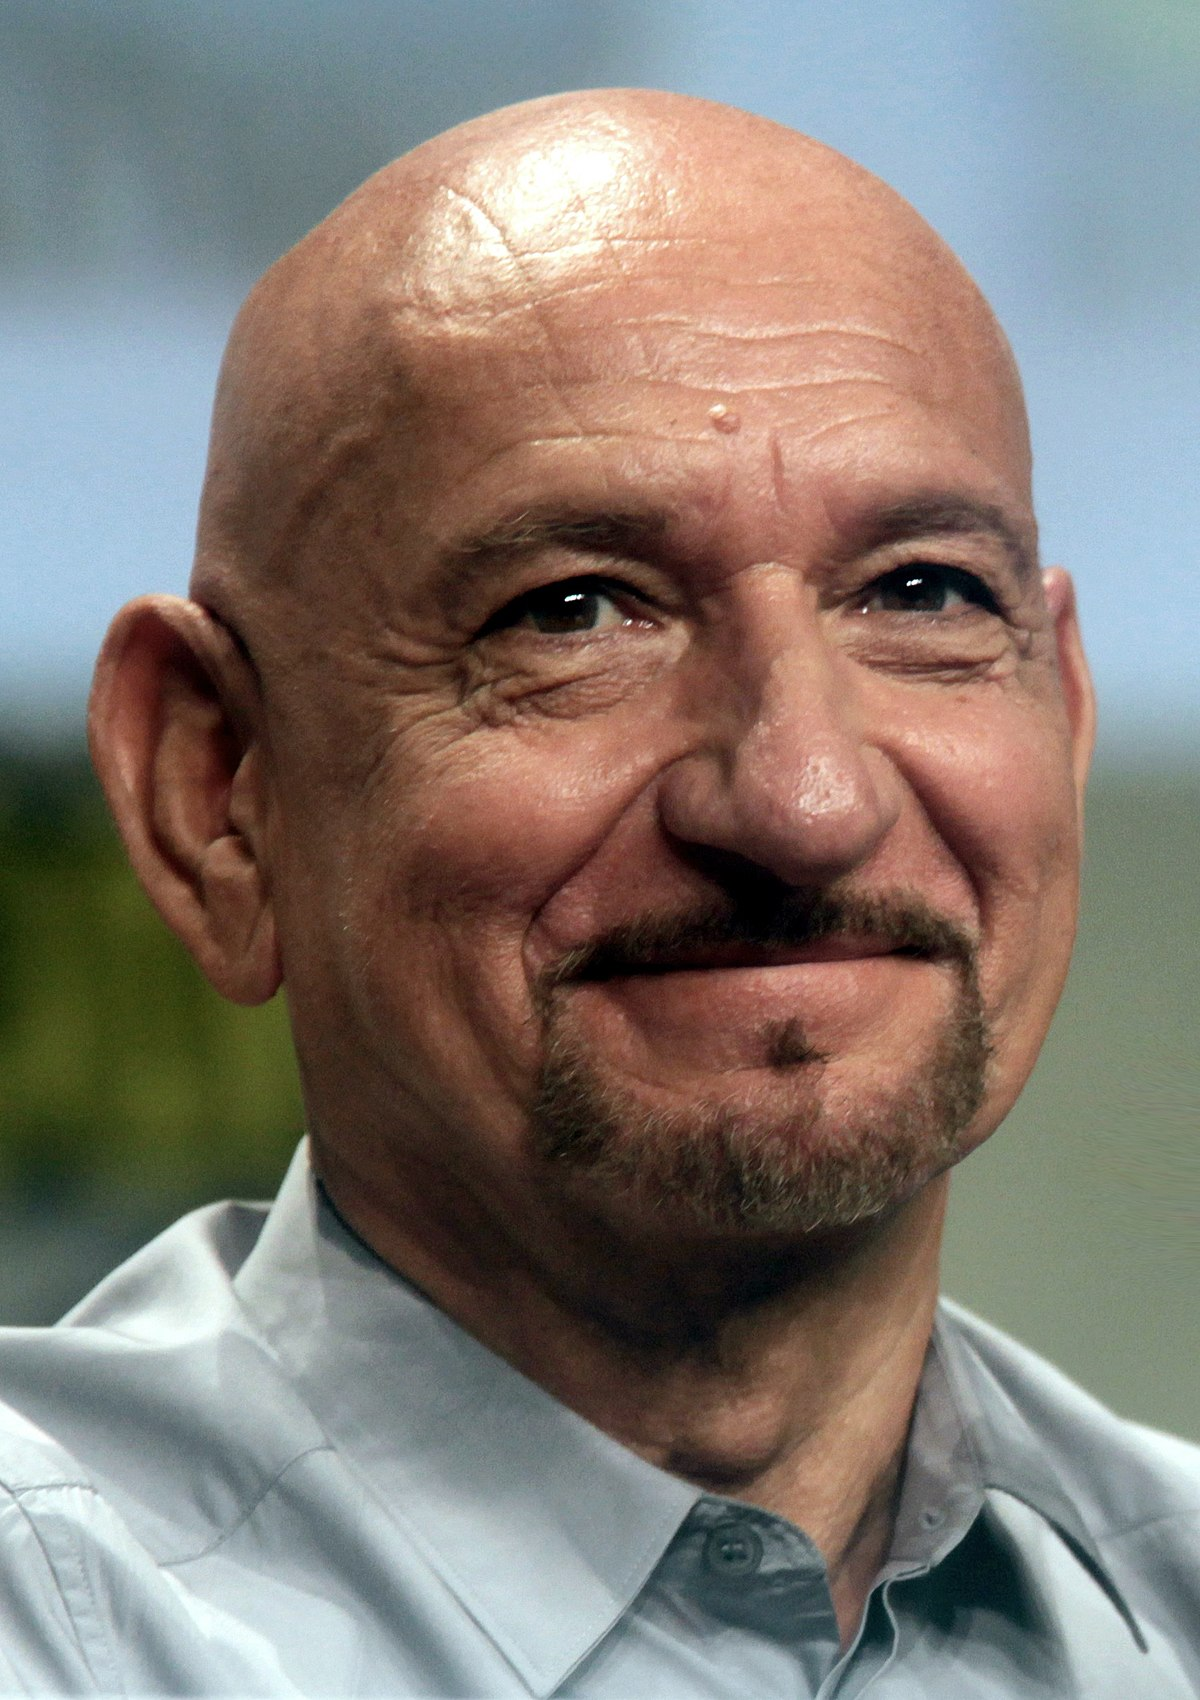 Ben Kingsley (born 1943)